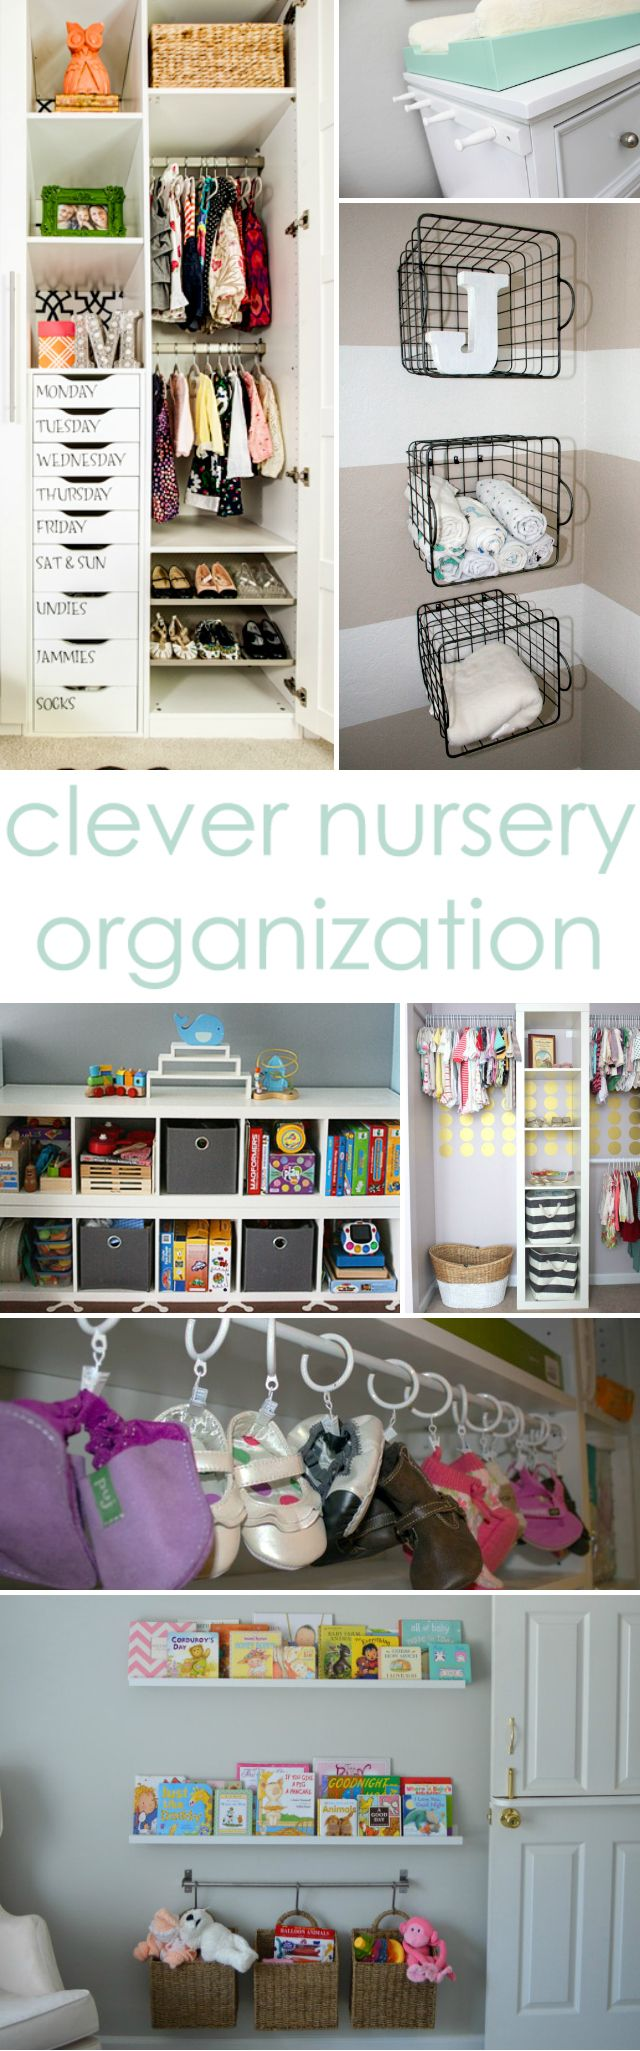 Clever Nursery Organization Ideas - Project Nursery: Organizations Ideas, Projects Nurseries, Wire Baskets, Changing Tables, Organization Ideas, Nurseries Organizations, Baskets Hung, Kids Rooms, Clever Nurseries